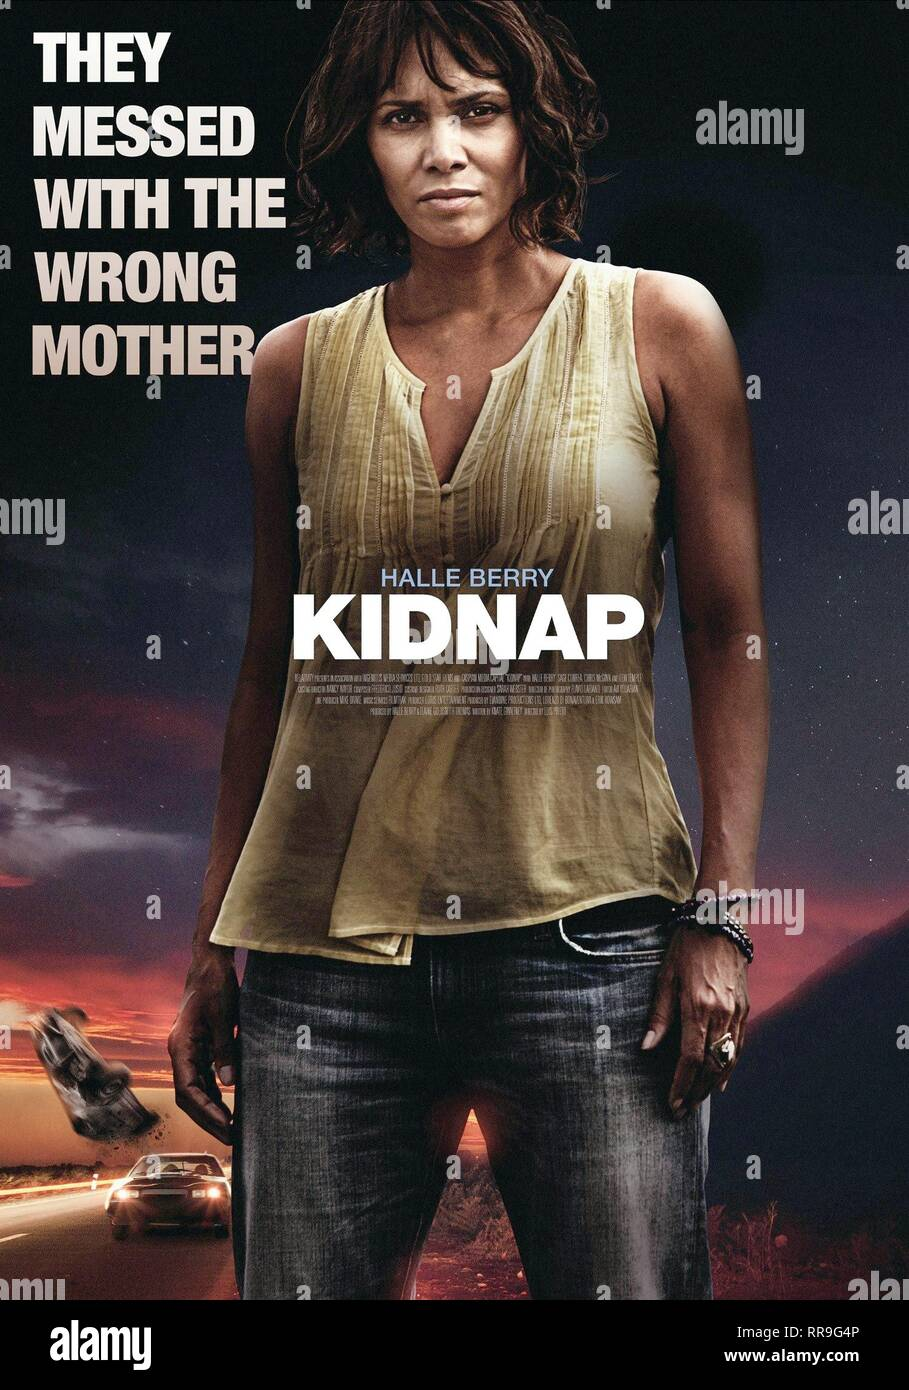 KIDNAP, HALLE BERRY POSTER, 2017 - Stock Image